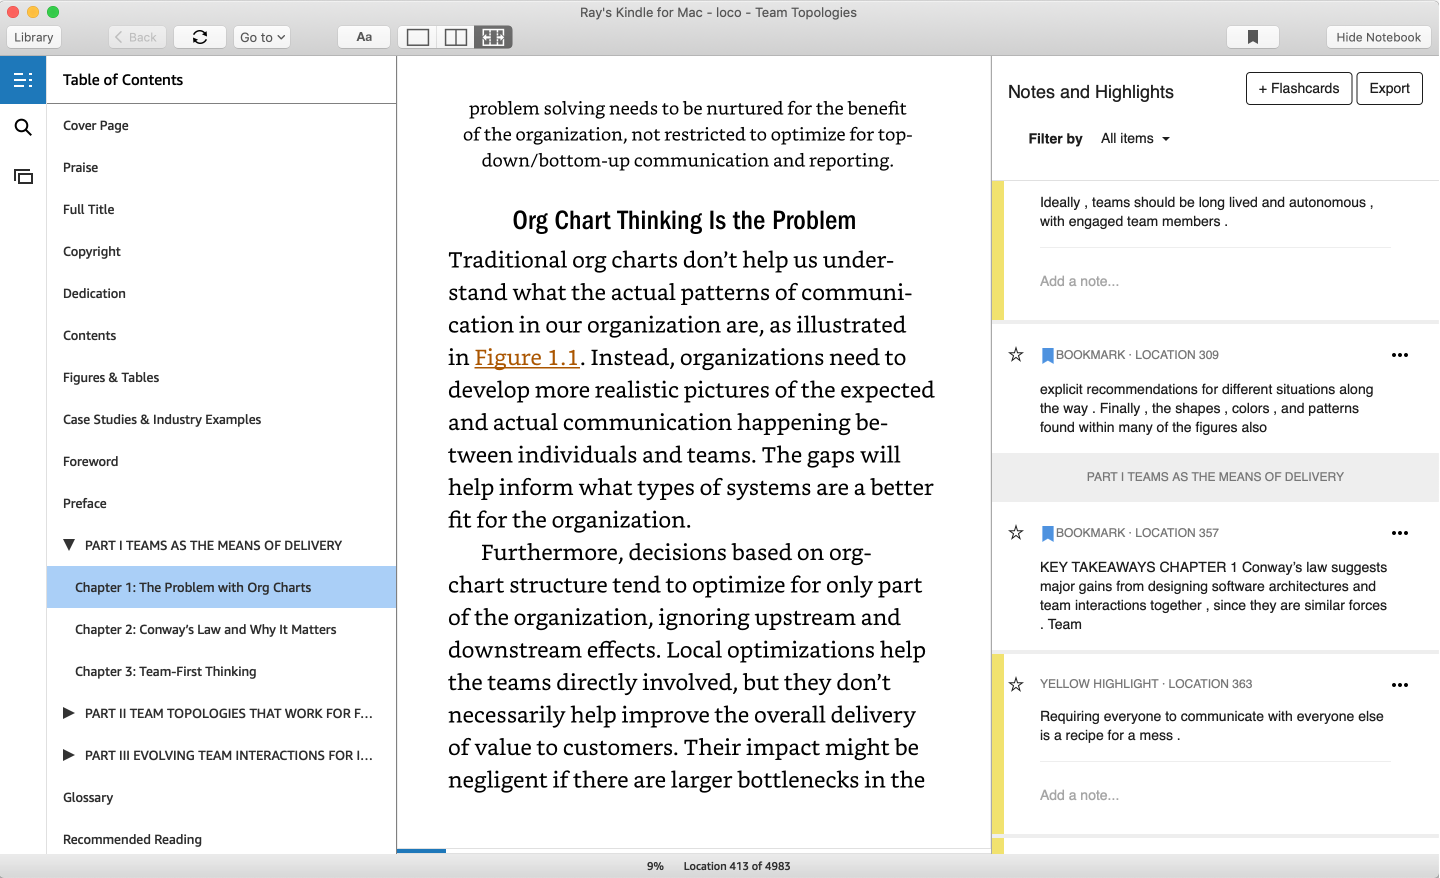 Kindle for Mac with both sidebars open